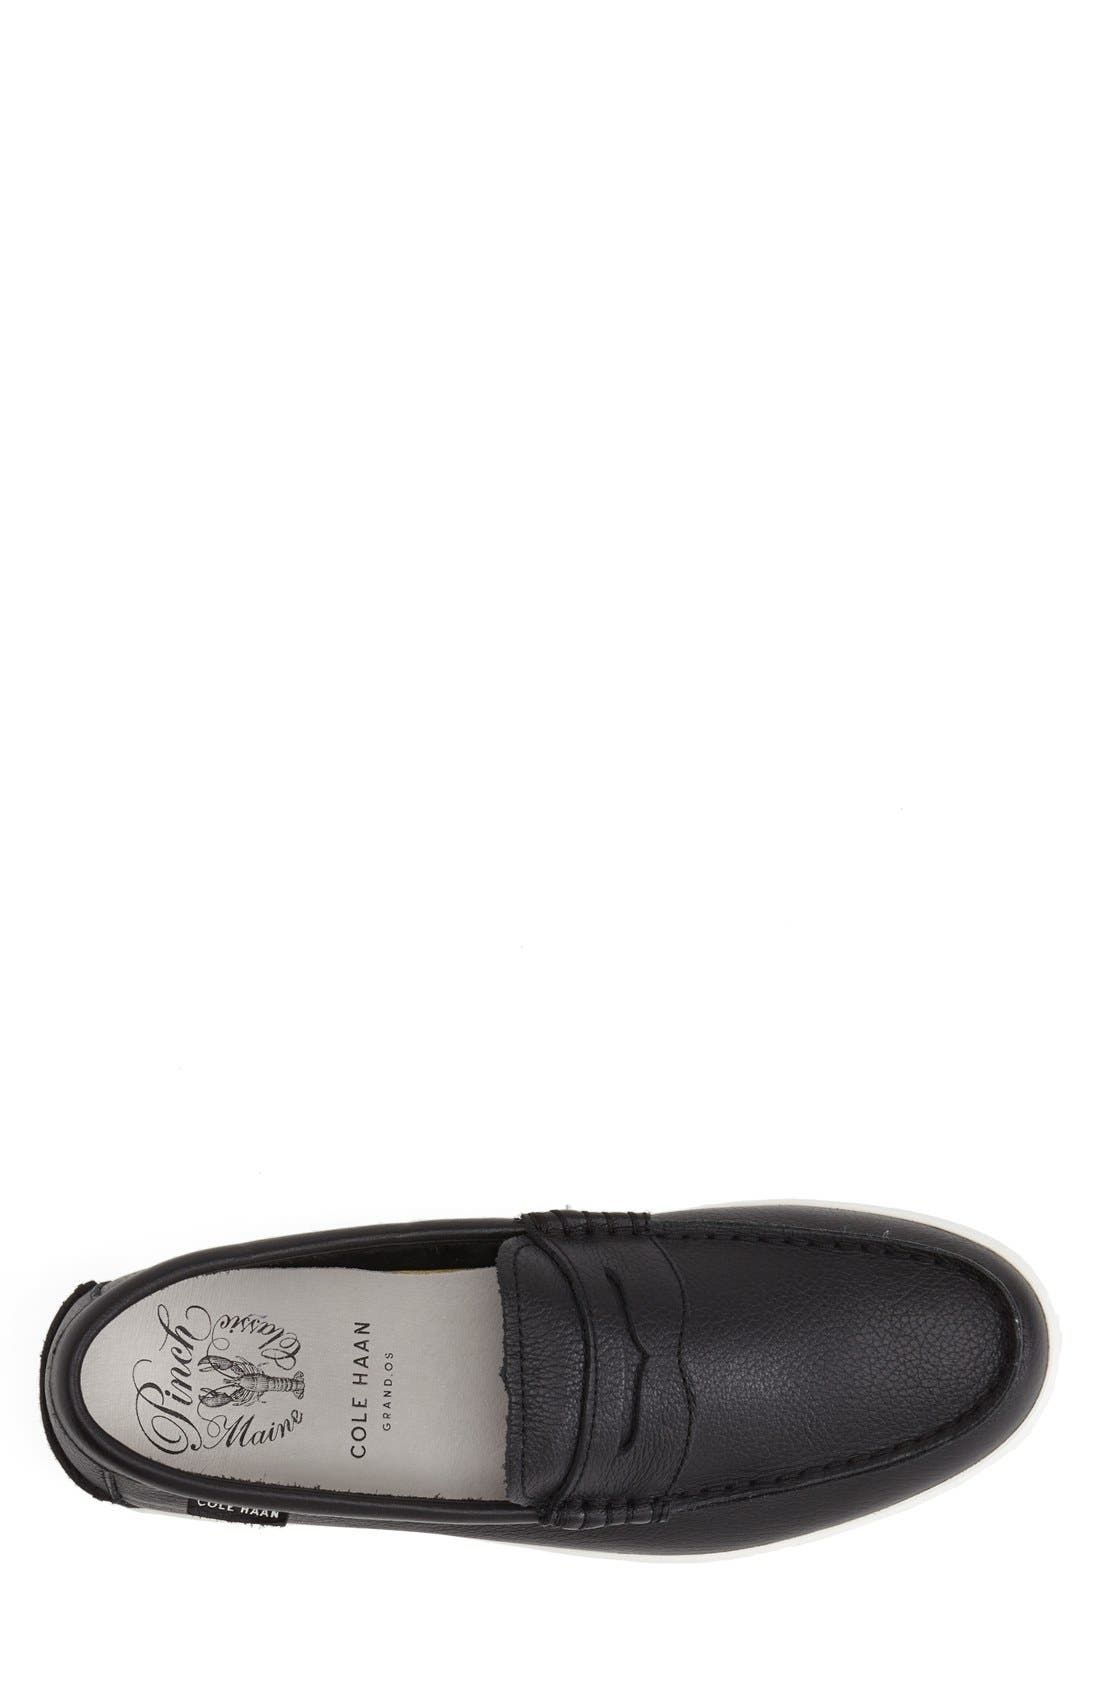 'Pinch' Penny Loafer,                             Alternate thumbnail 7, color,                             001